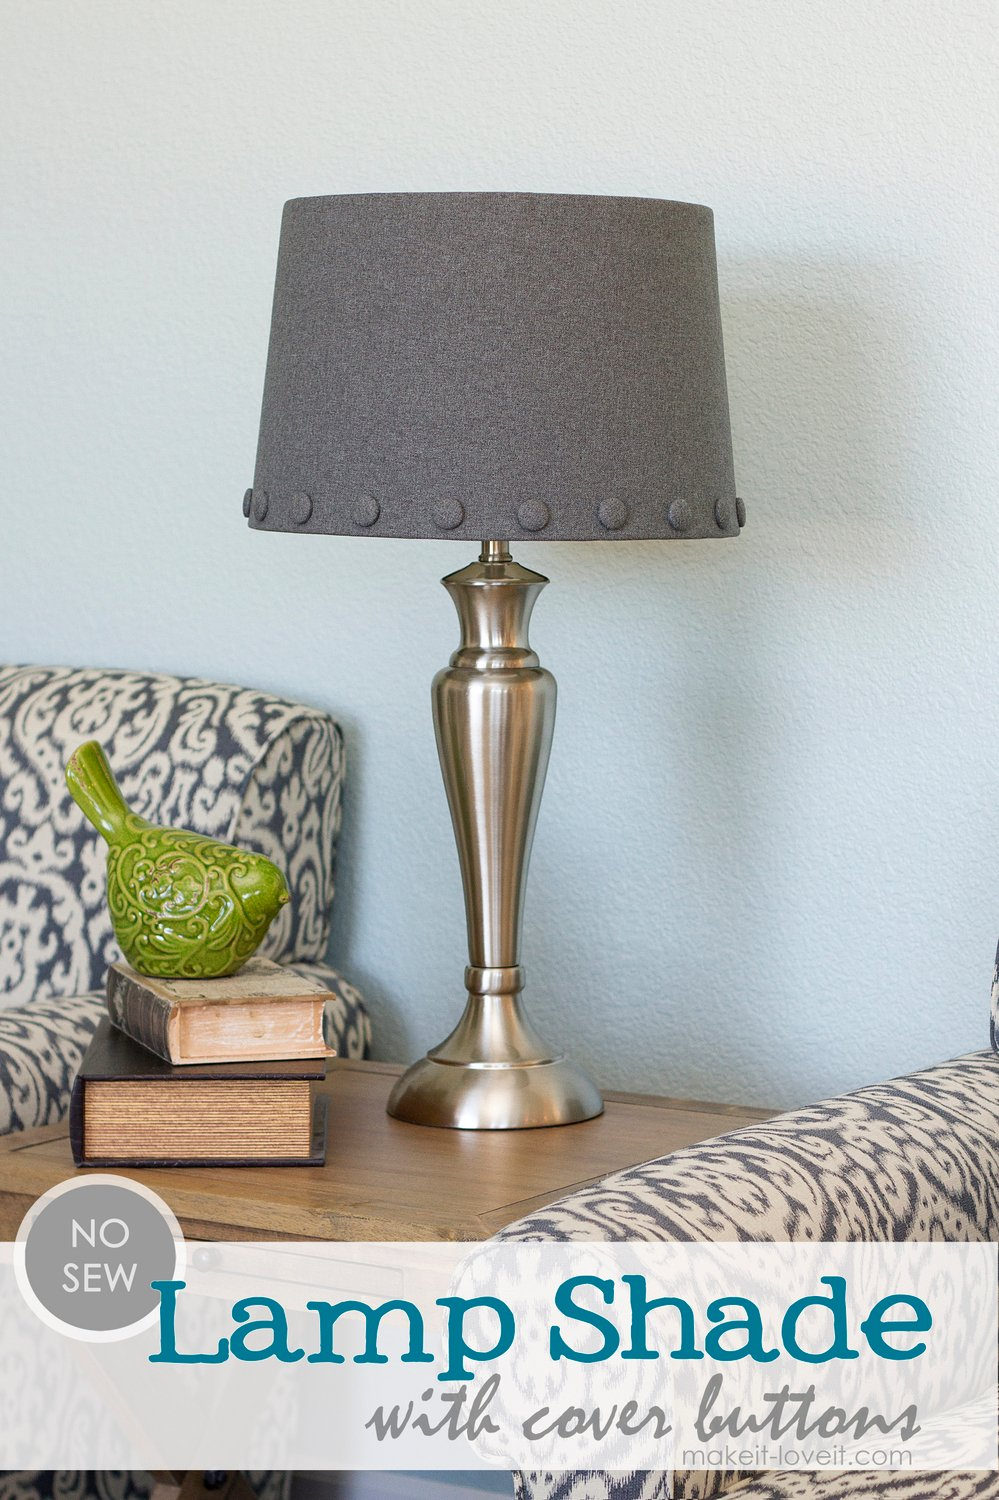 1 lamp shade with cover buttons